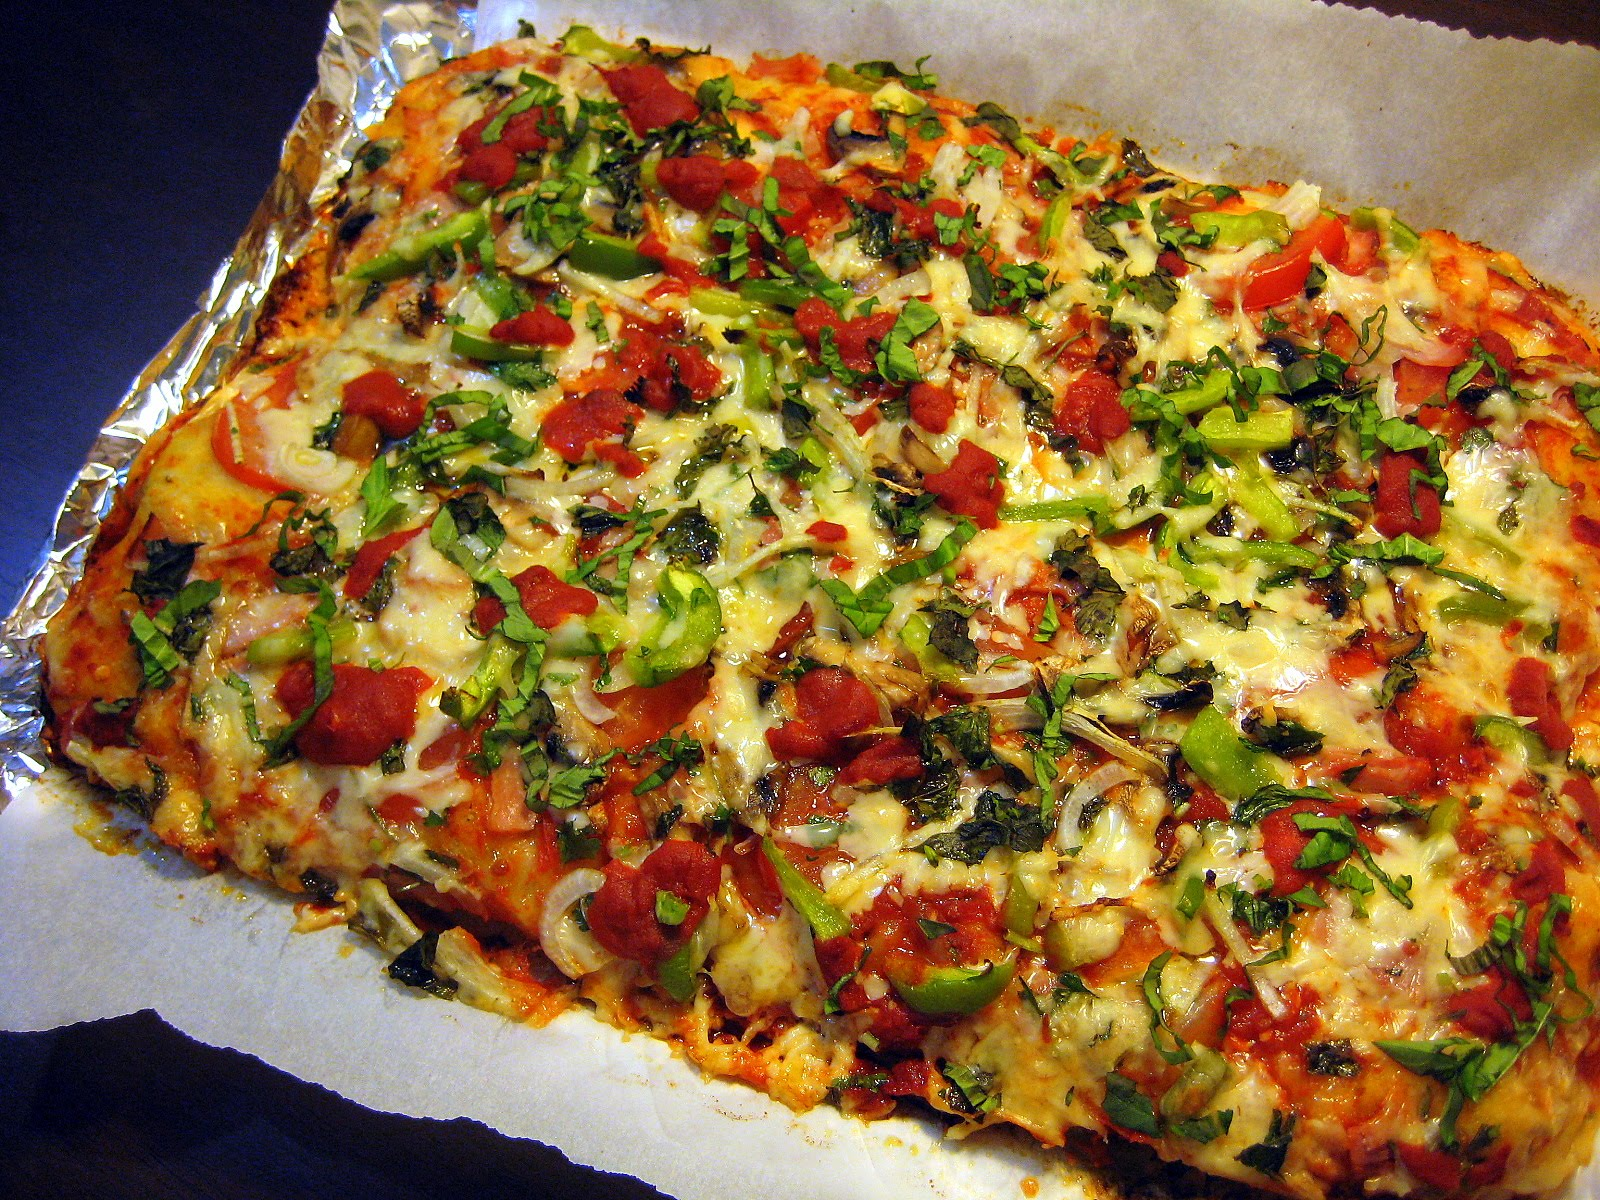 Food Tastes Yummy: EASY HOMEMADE PIZZA